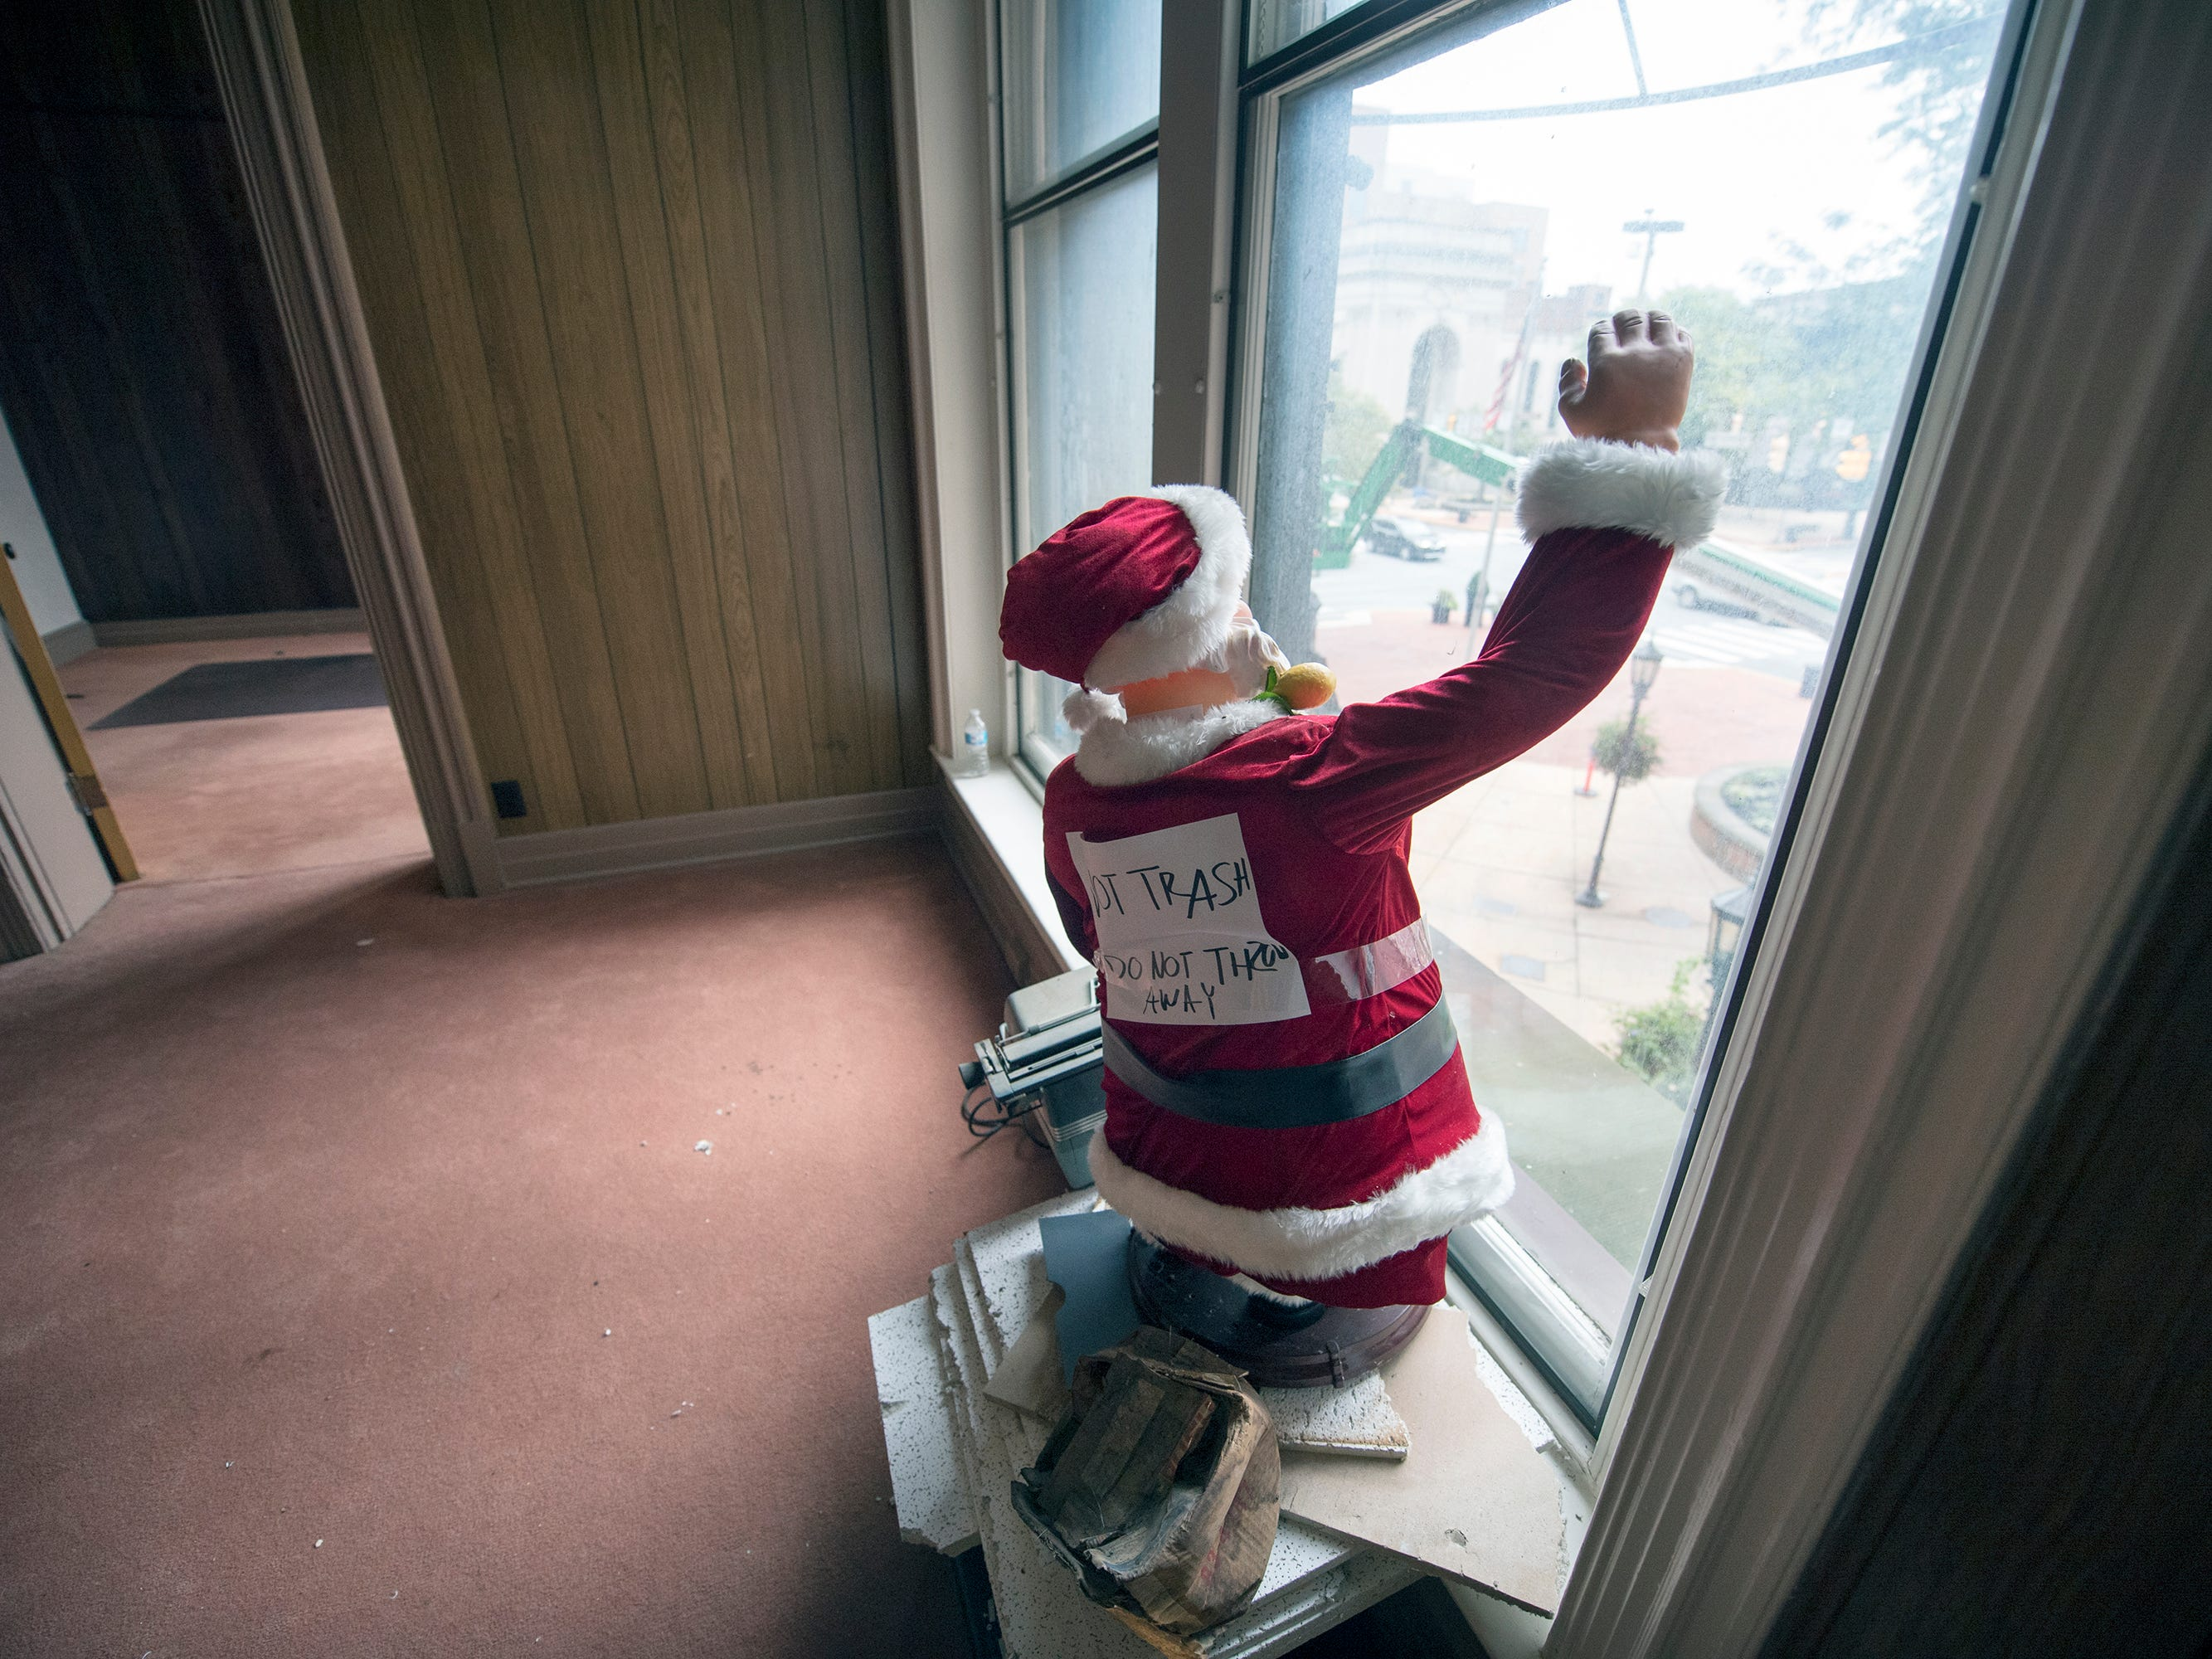 A Santa waves to Continental Square from the vacant second floor of the Rupp-Schmidt Building at 2 West Market Street in York.